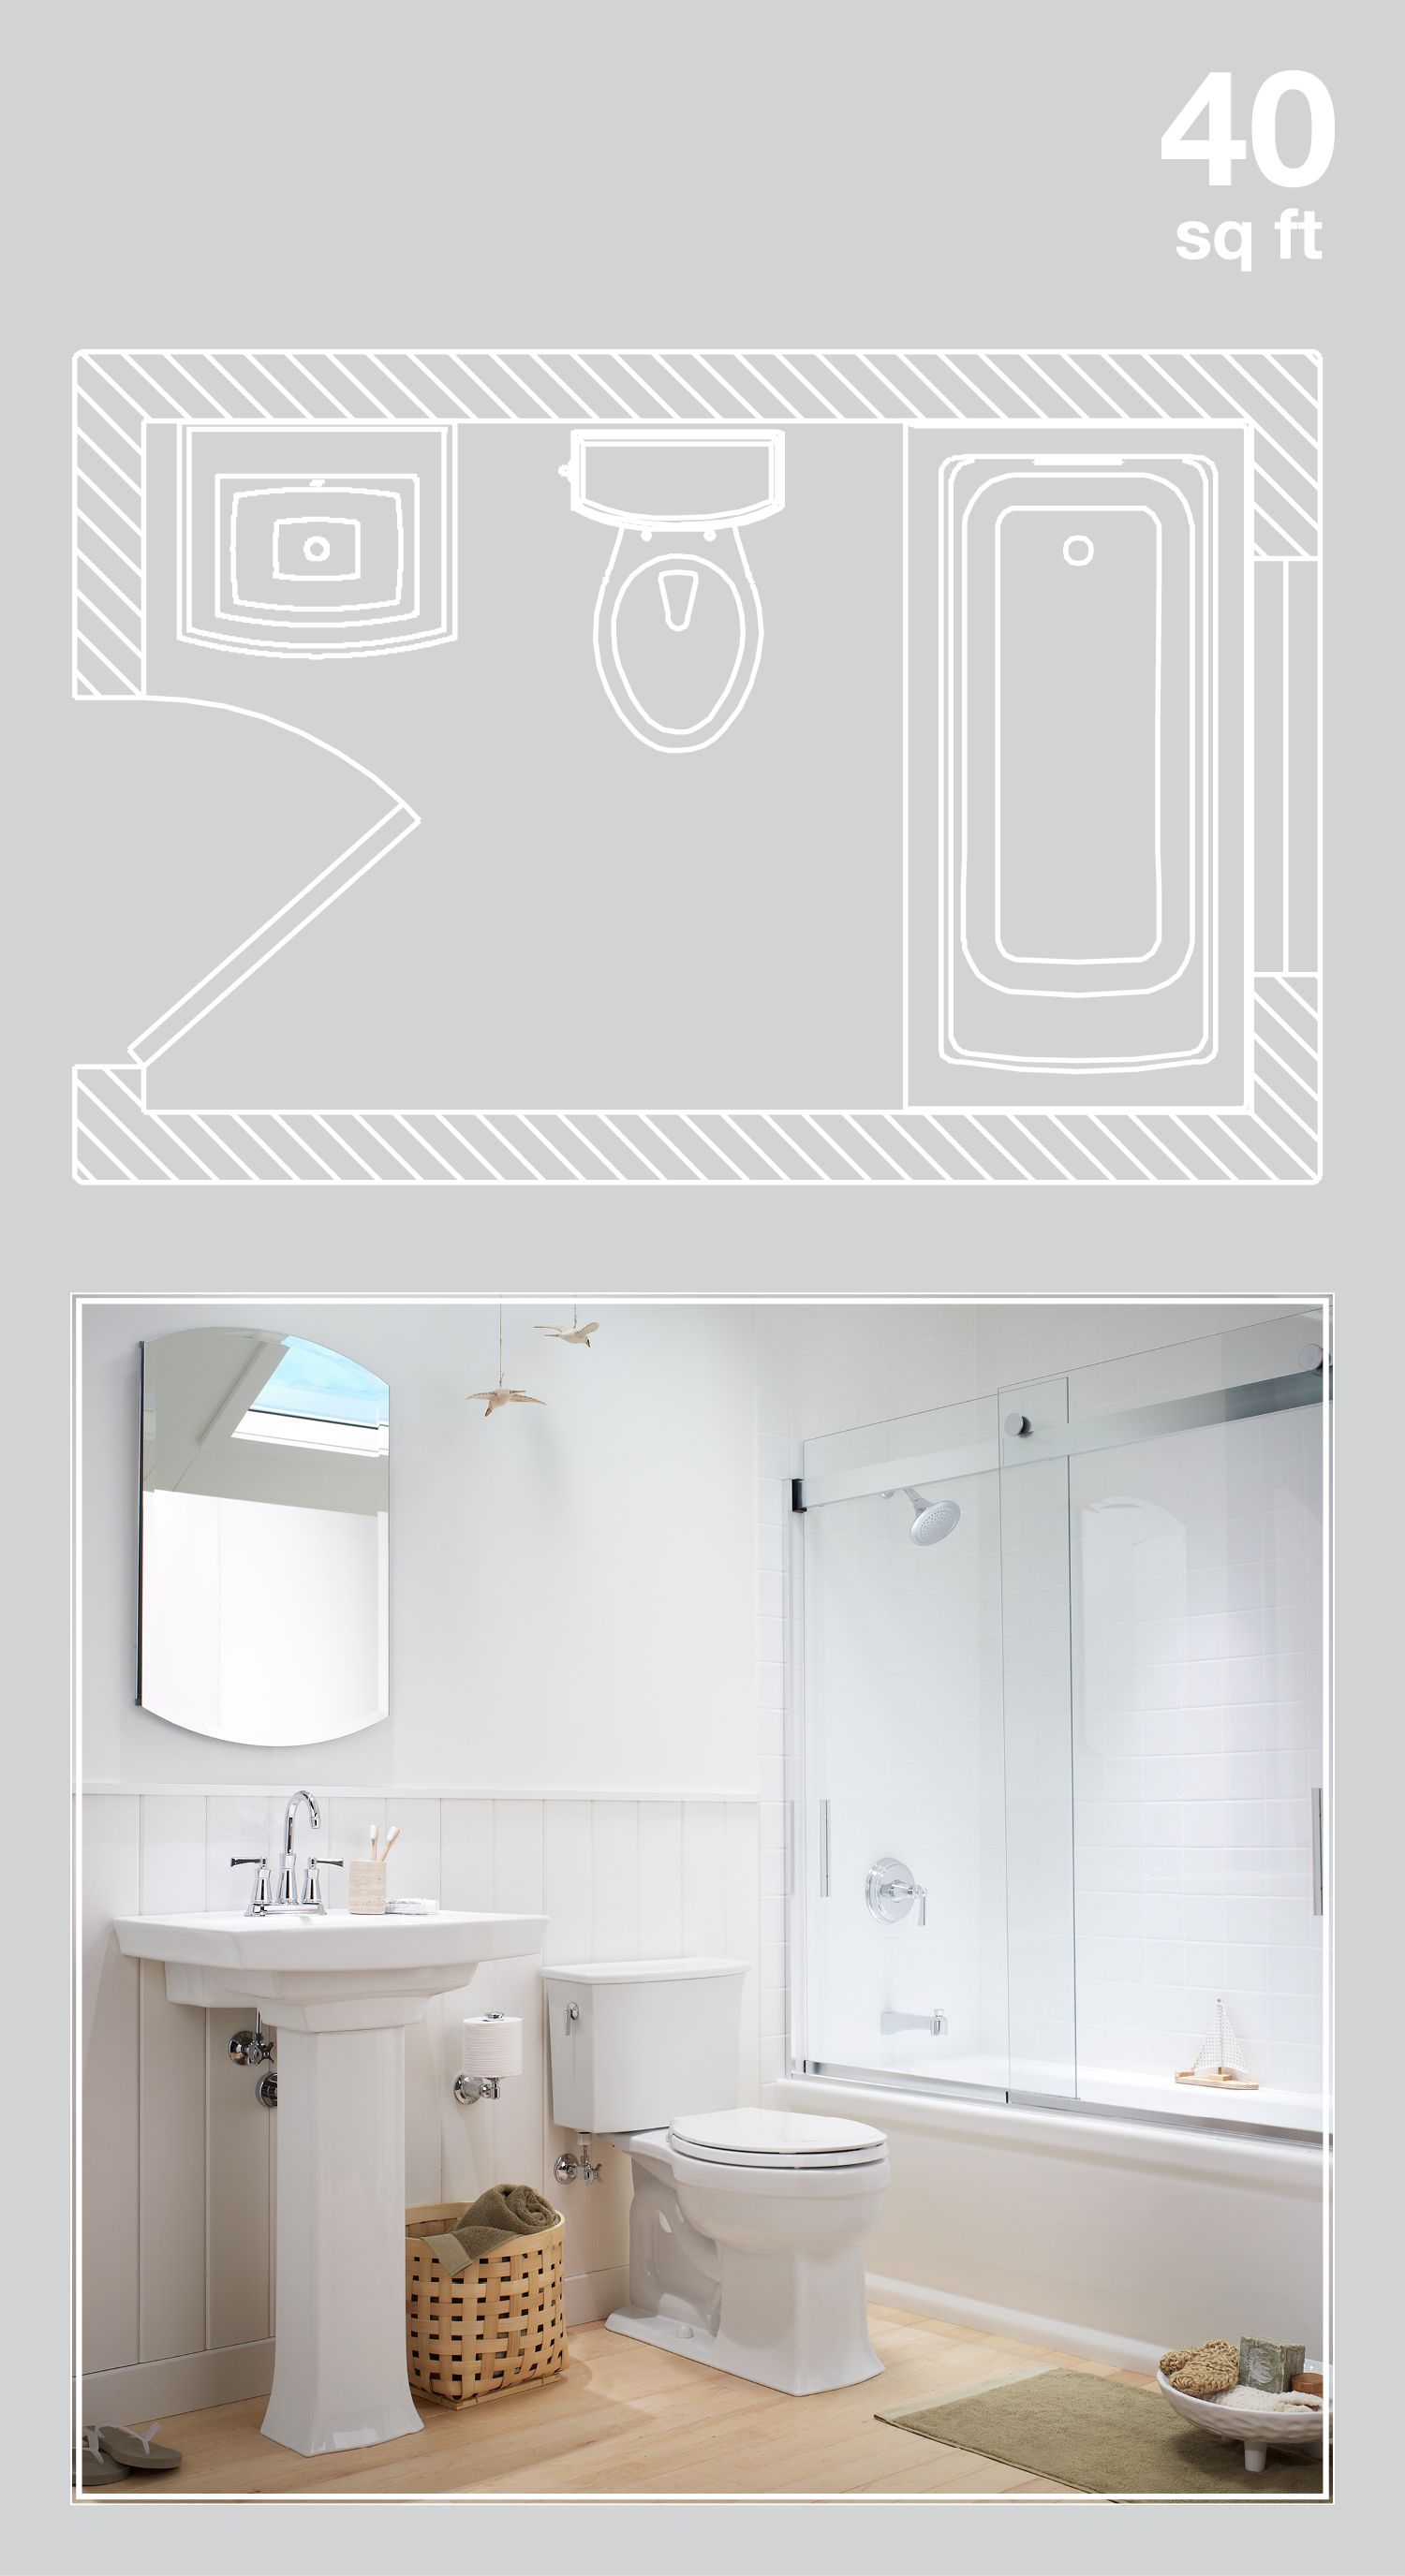 Design Ideas For 40 Square Foot Bathroom With A Tiny Footprint